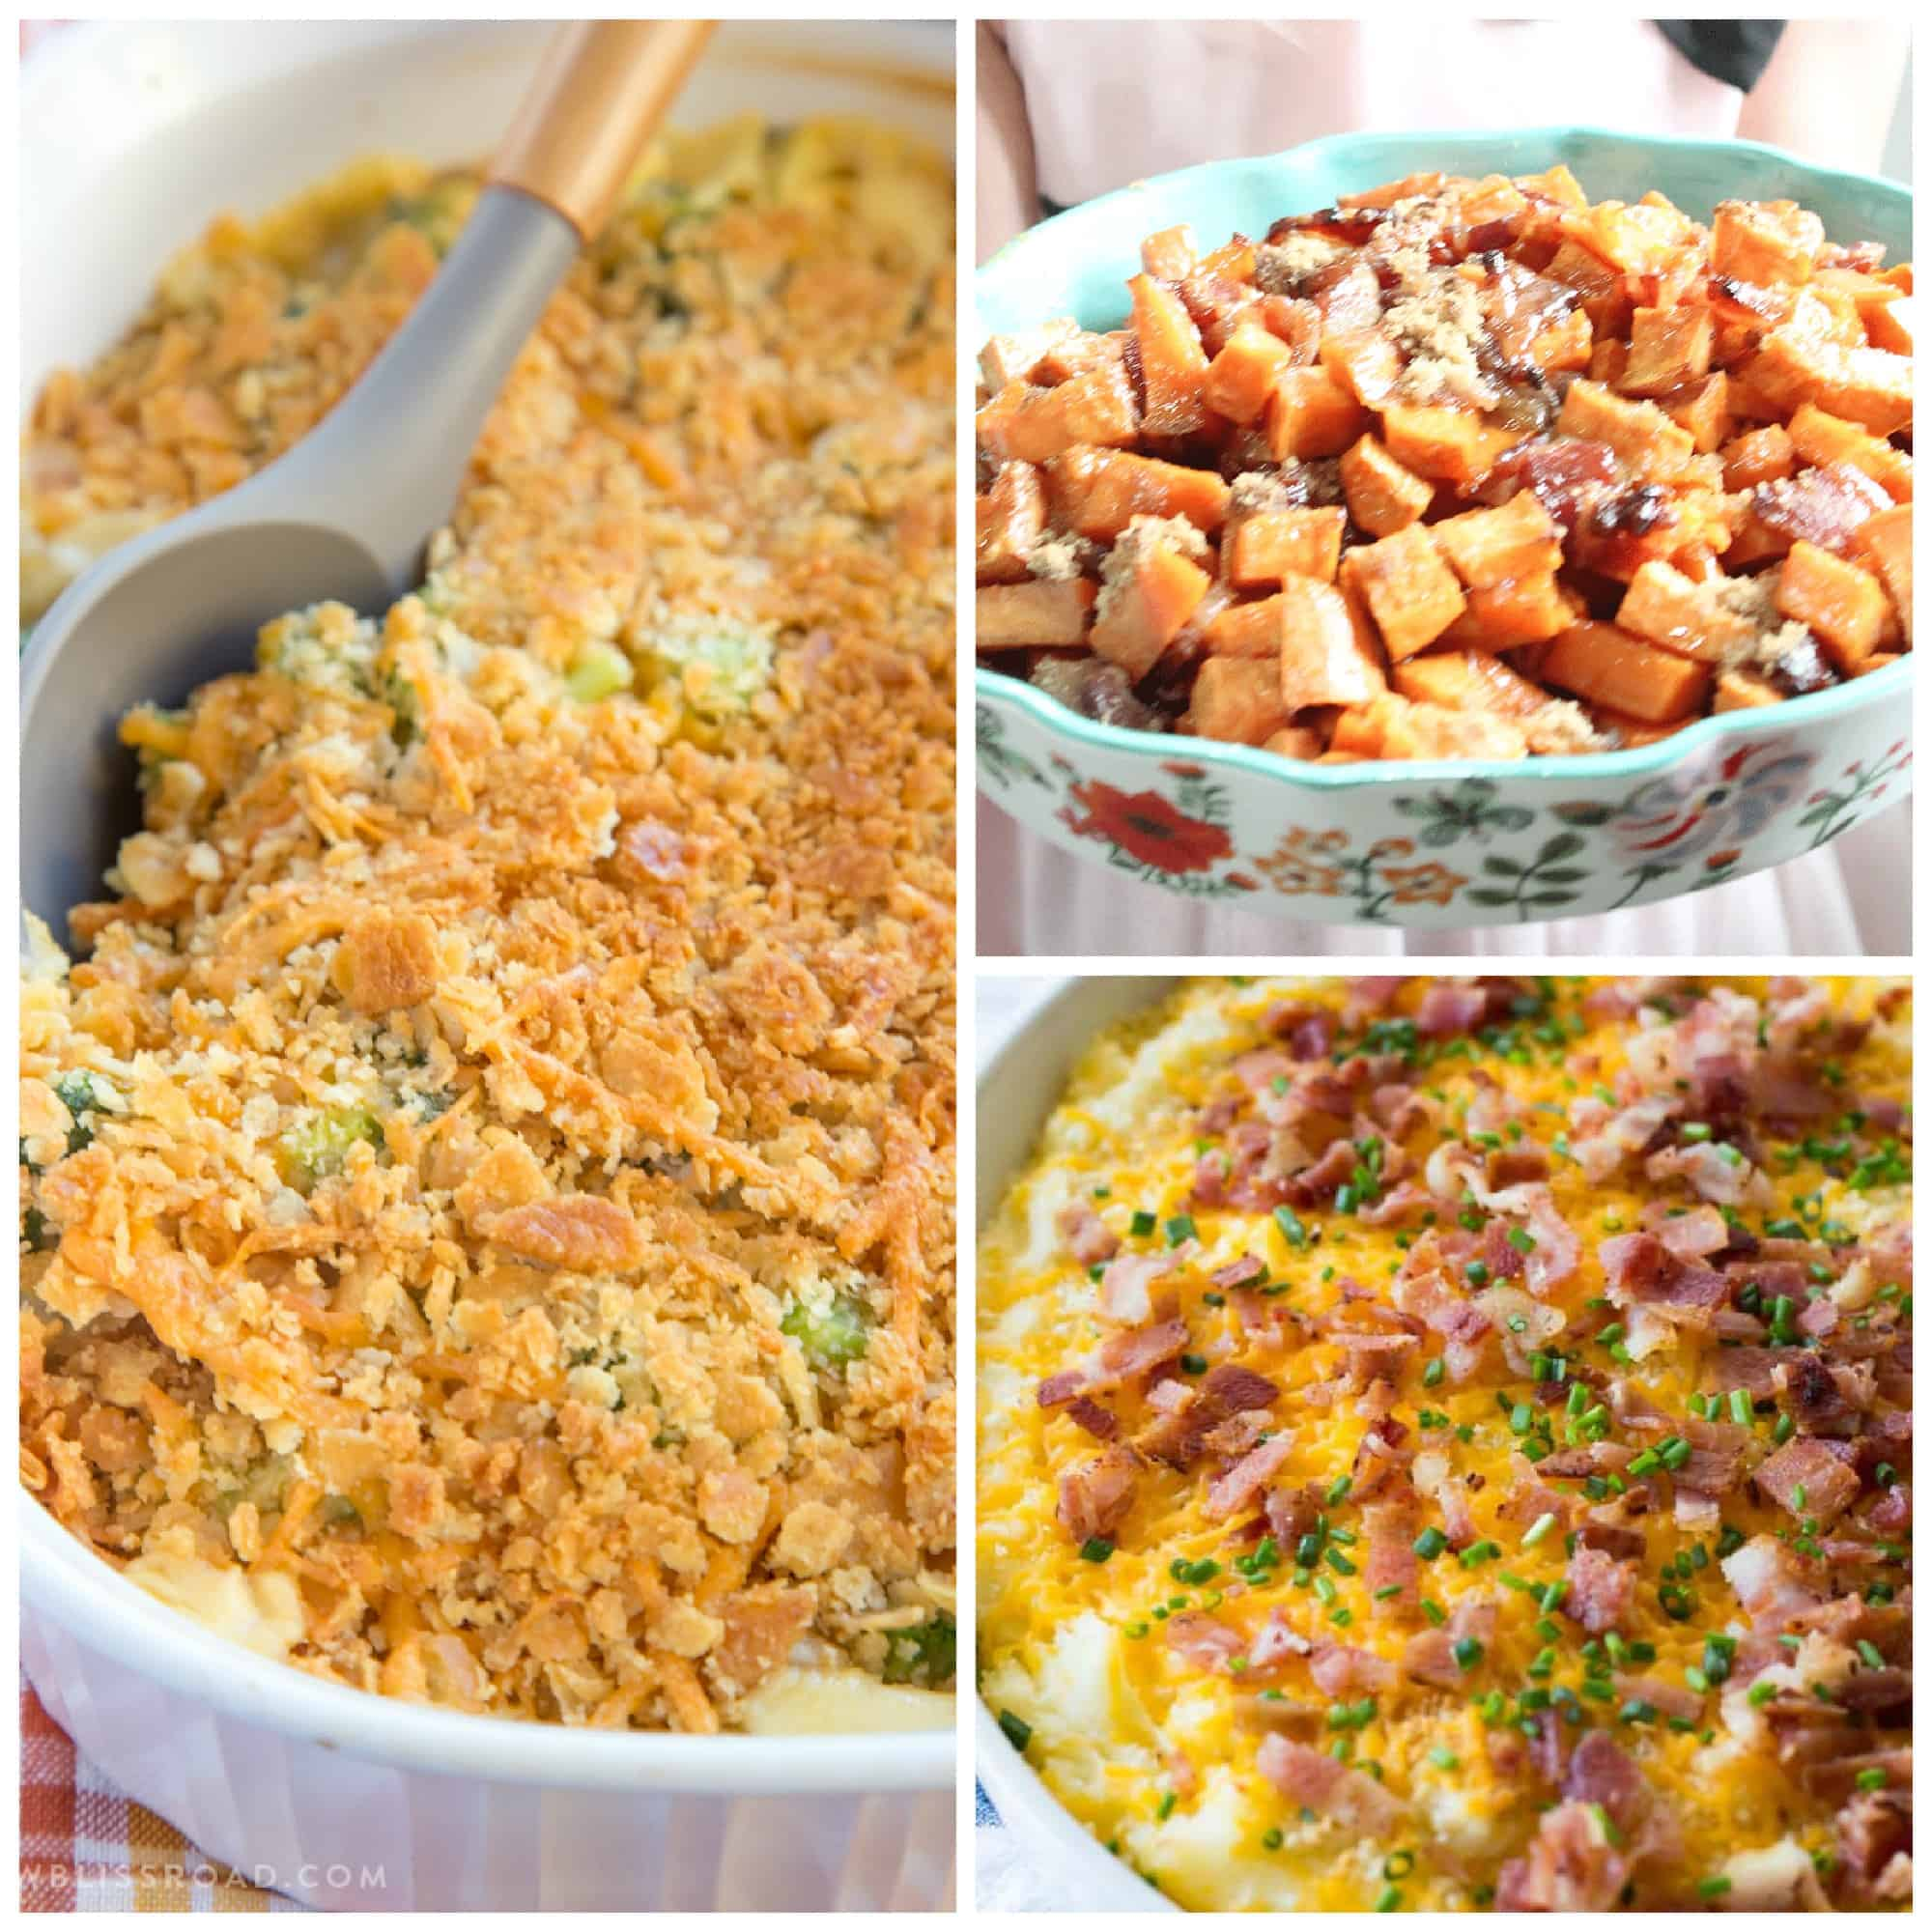 Recipes for Thanksgiving side dishes that will be perfect with your Thanksgiving Dinner #Thankgivingdinner #ThanksgivingSideDishes